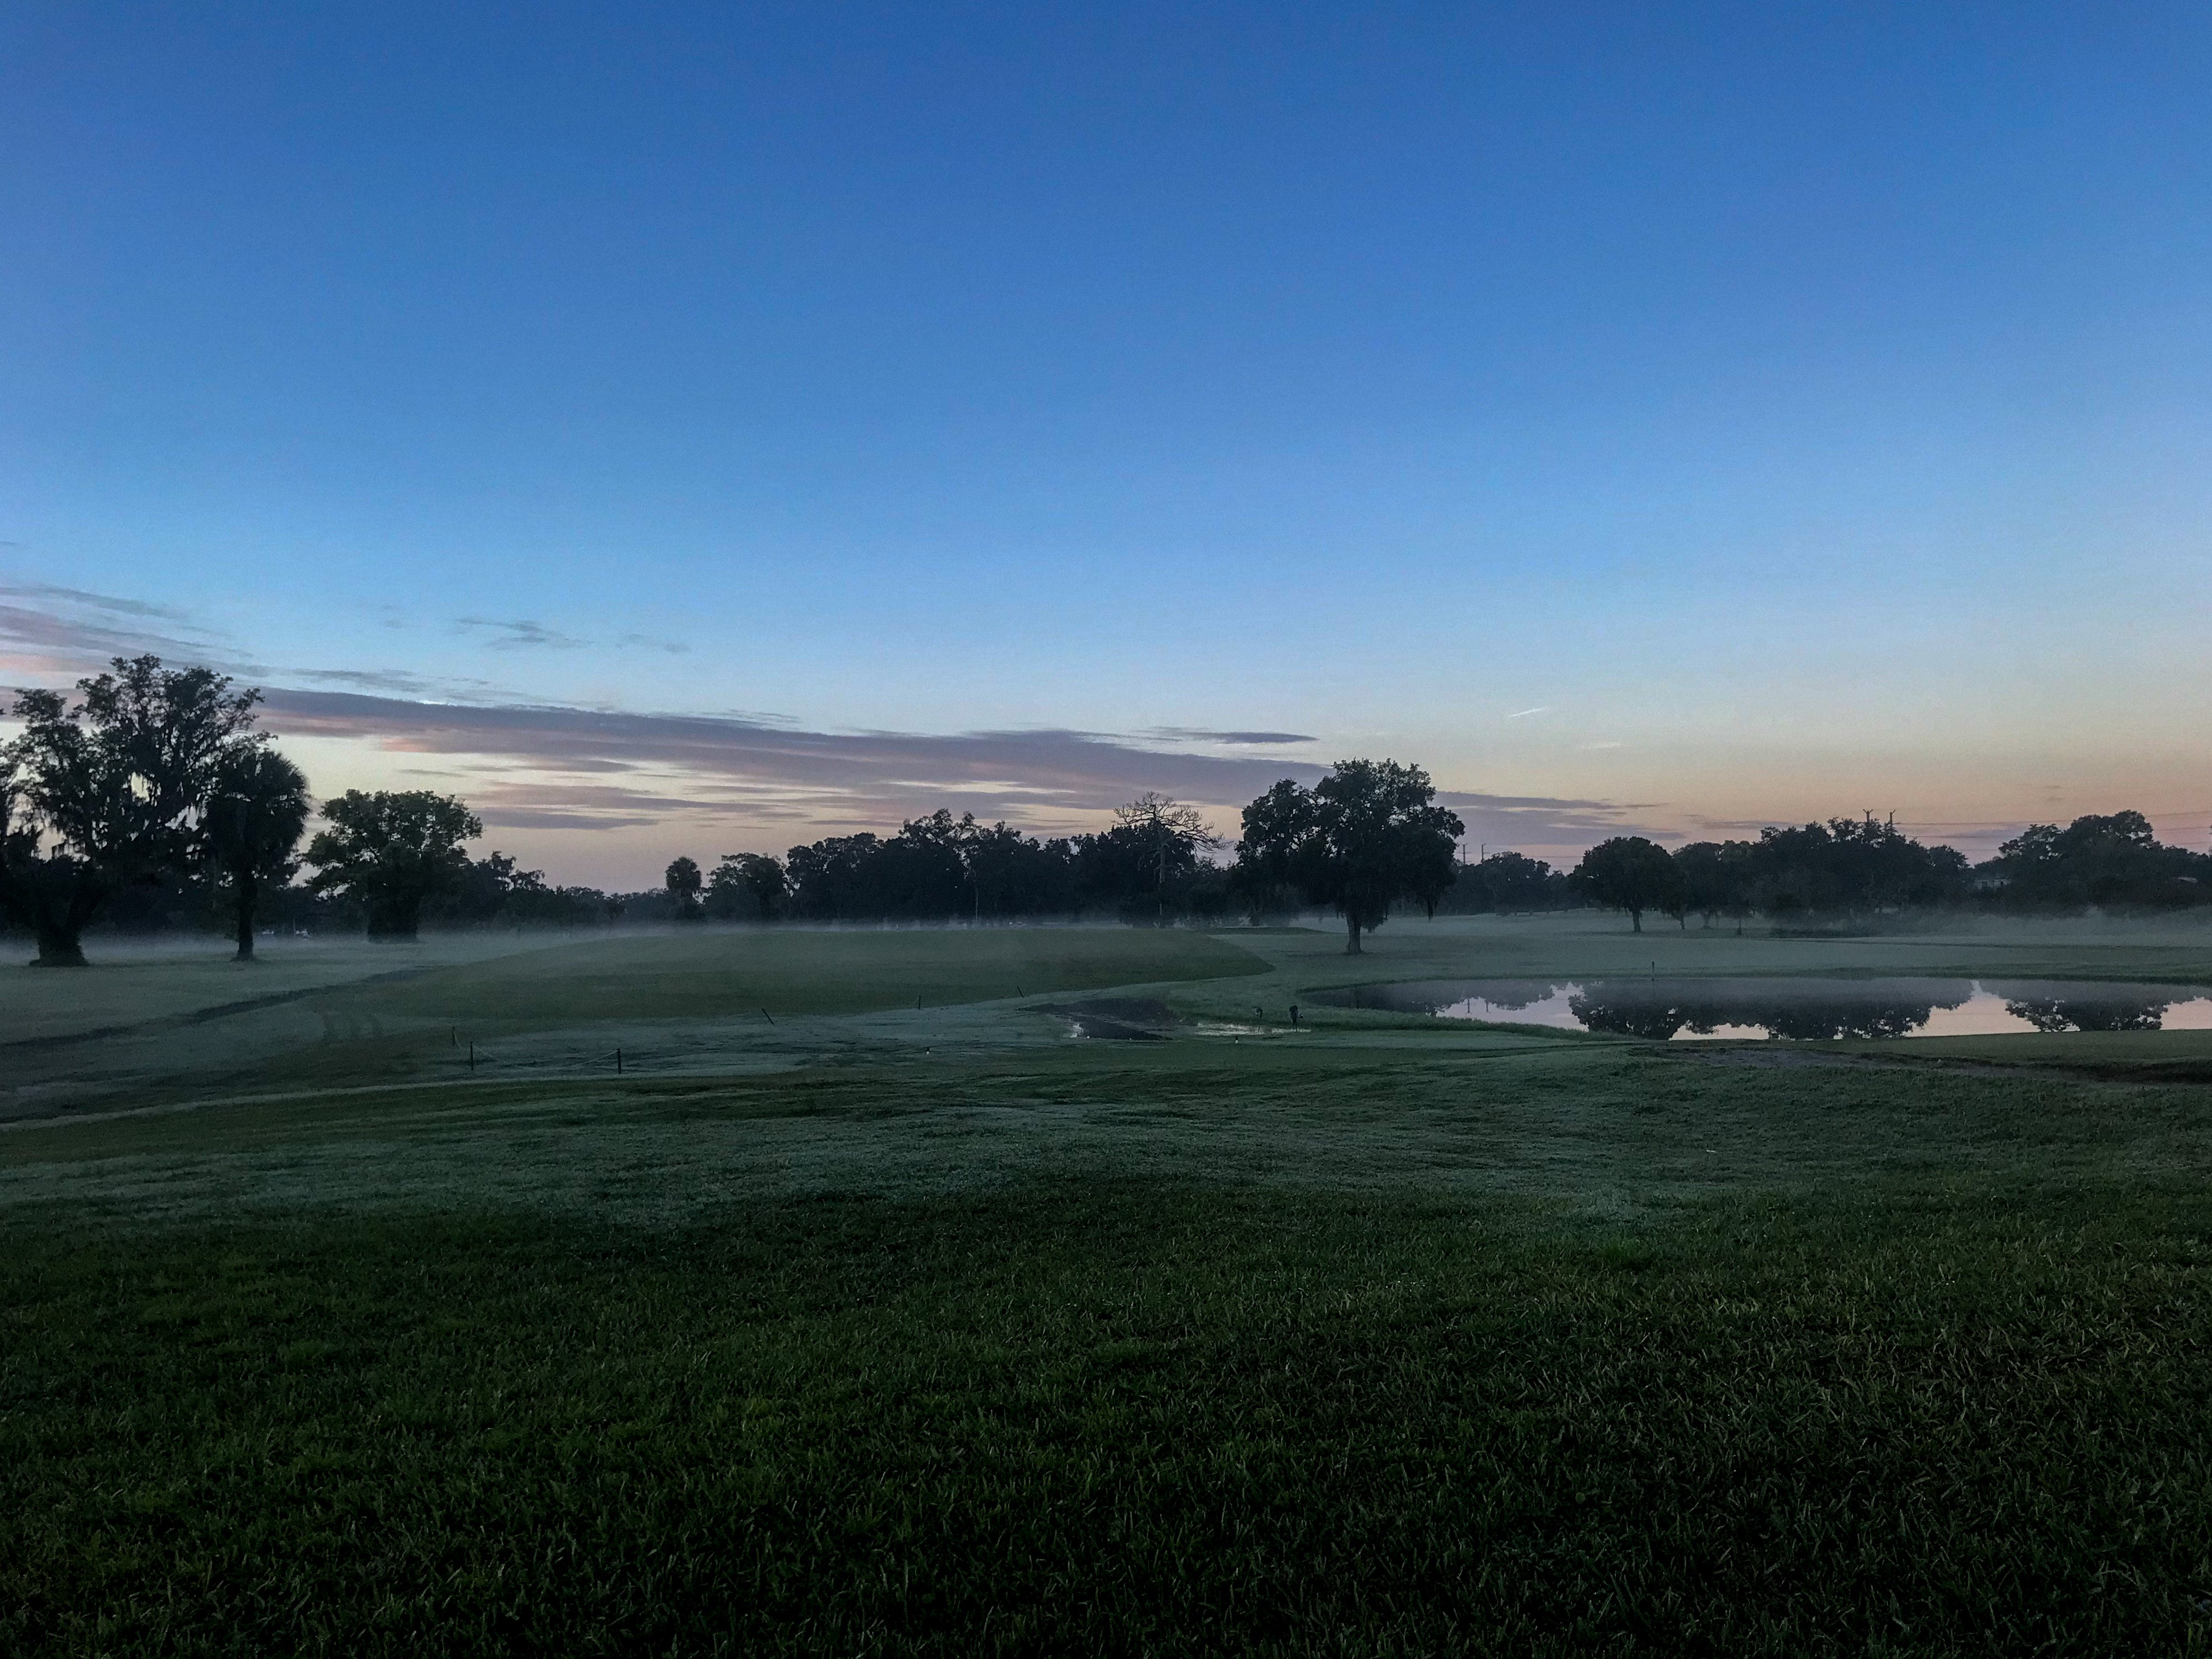 Misty golf course with dotted trees, mostly dark blue sky with orange coming up from the horizon